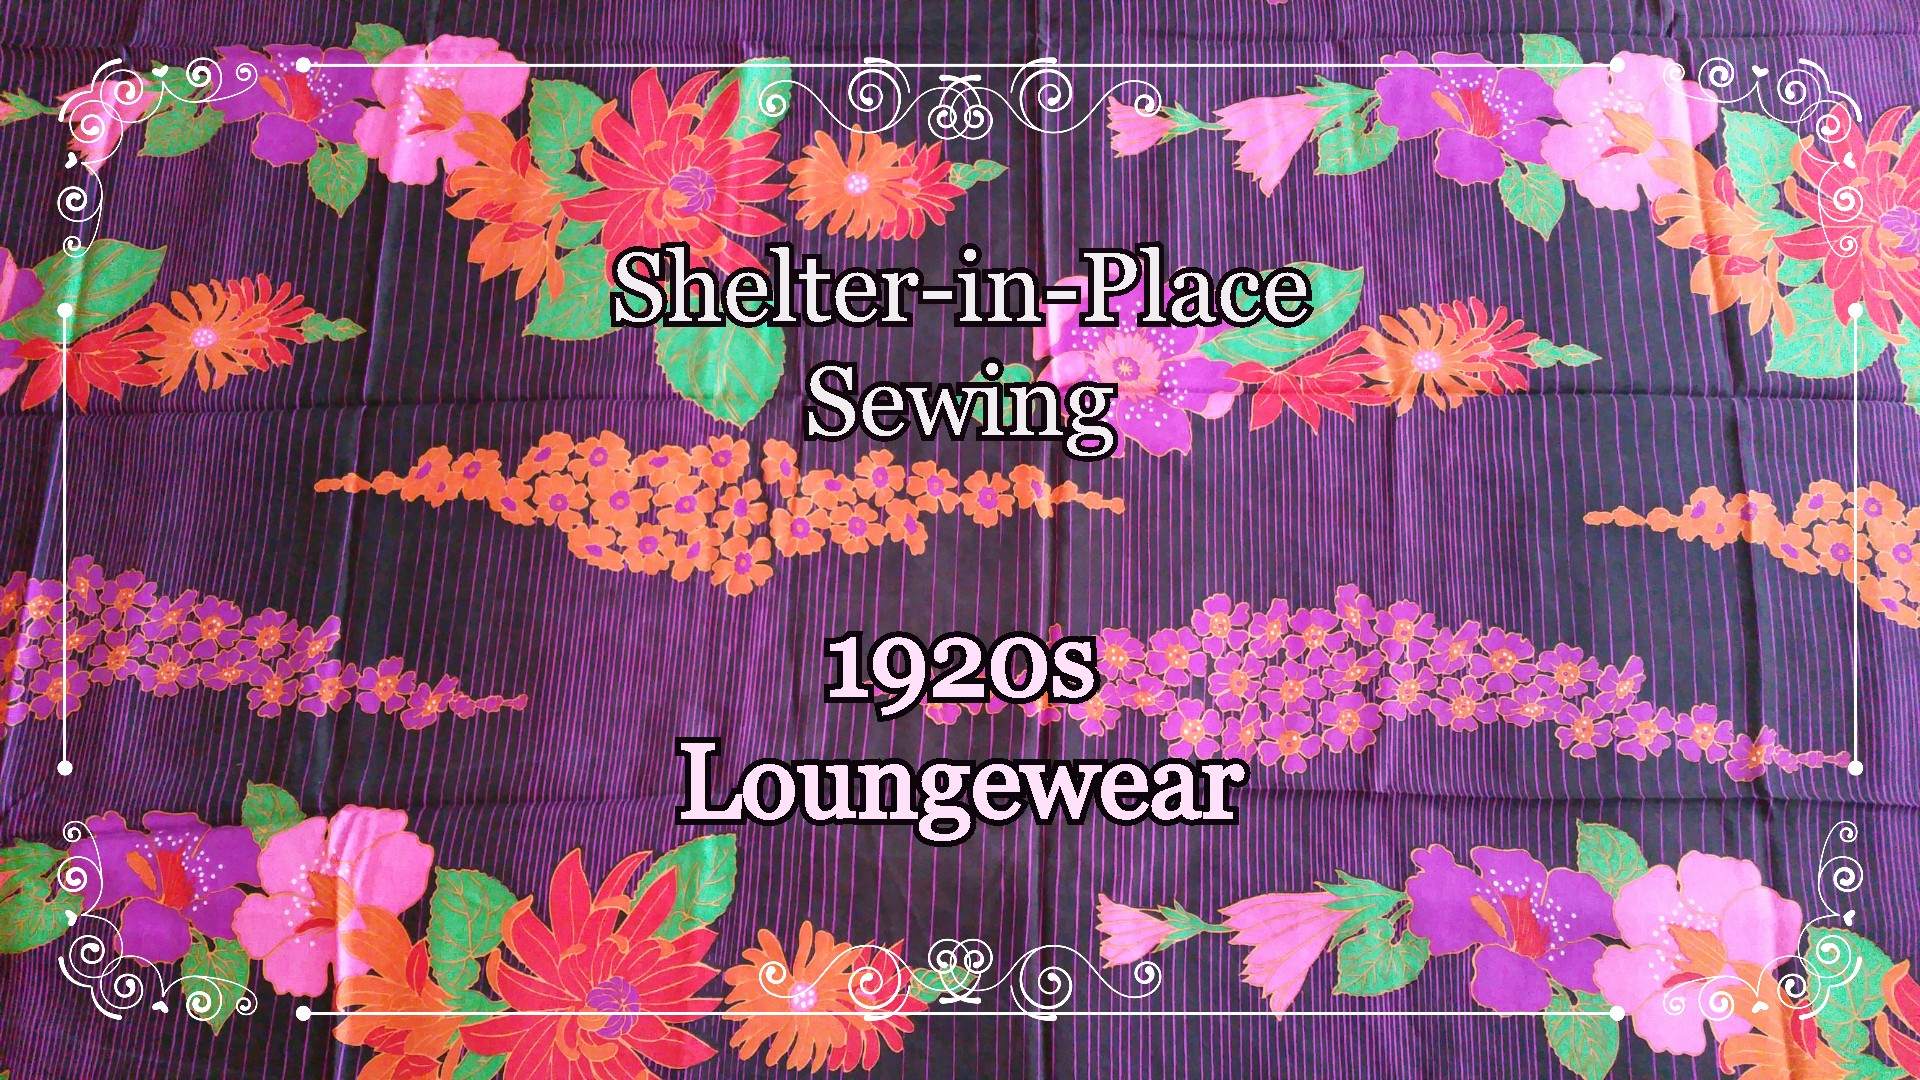 Shelter-in-Place Sewing: 1920s Loungewear!